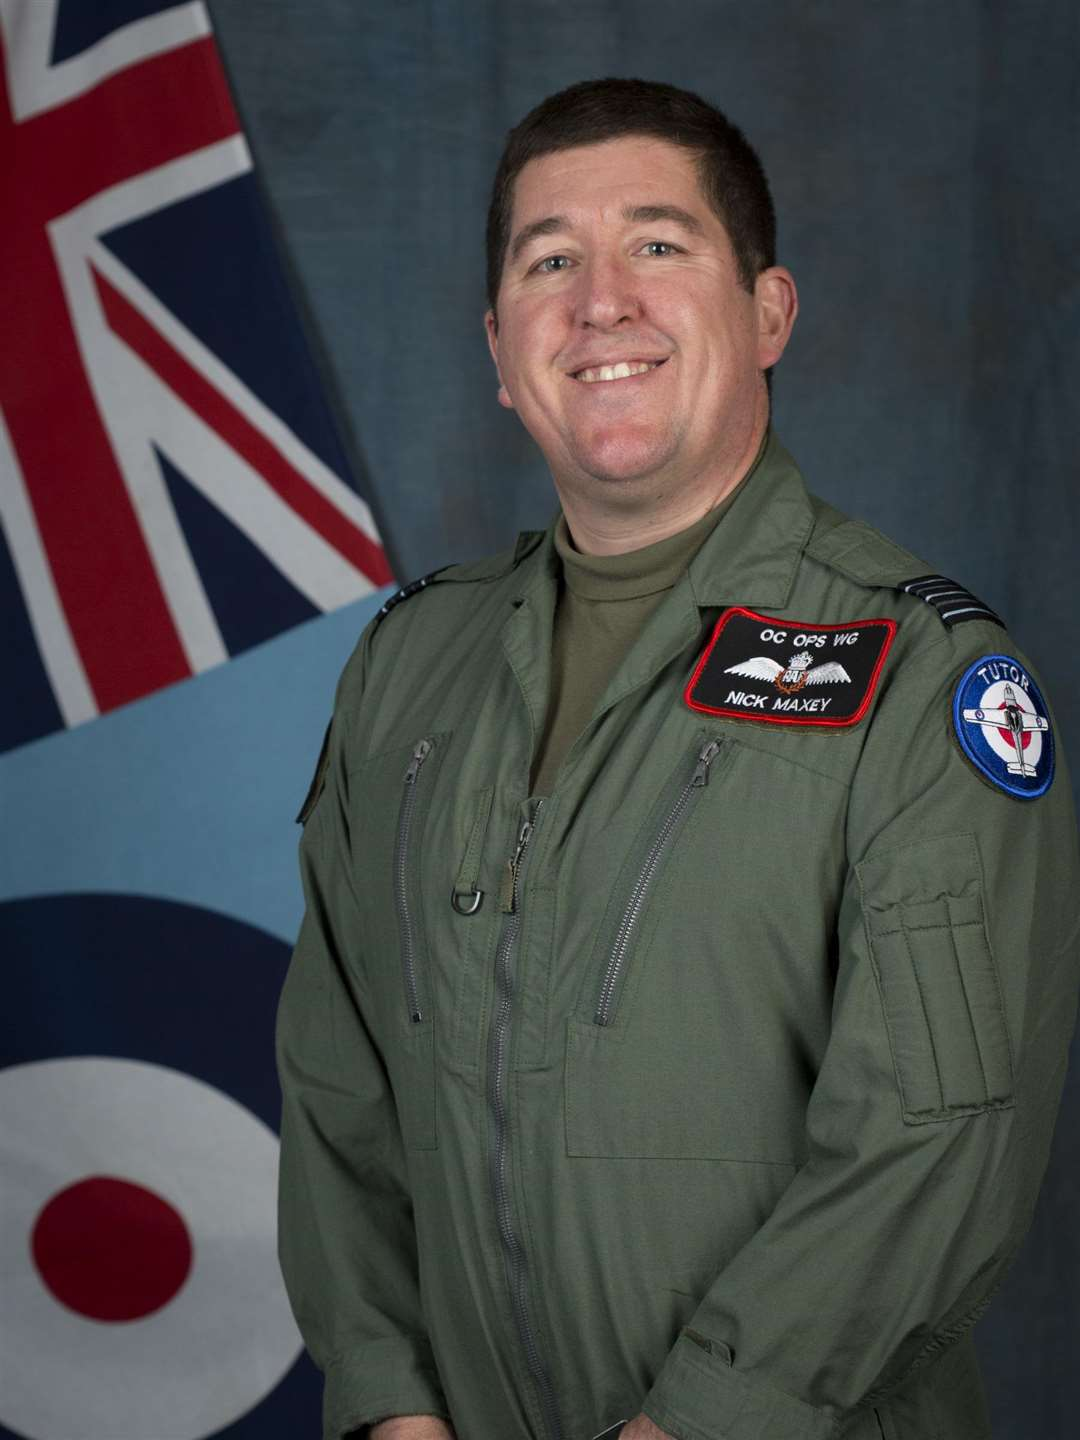 Wing Commander Nick Maxey (4678700)